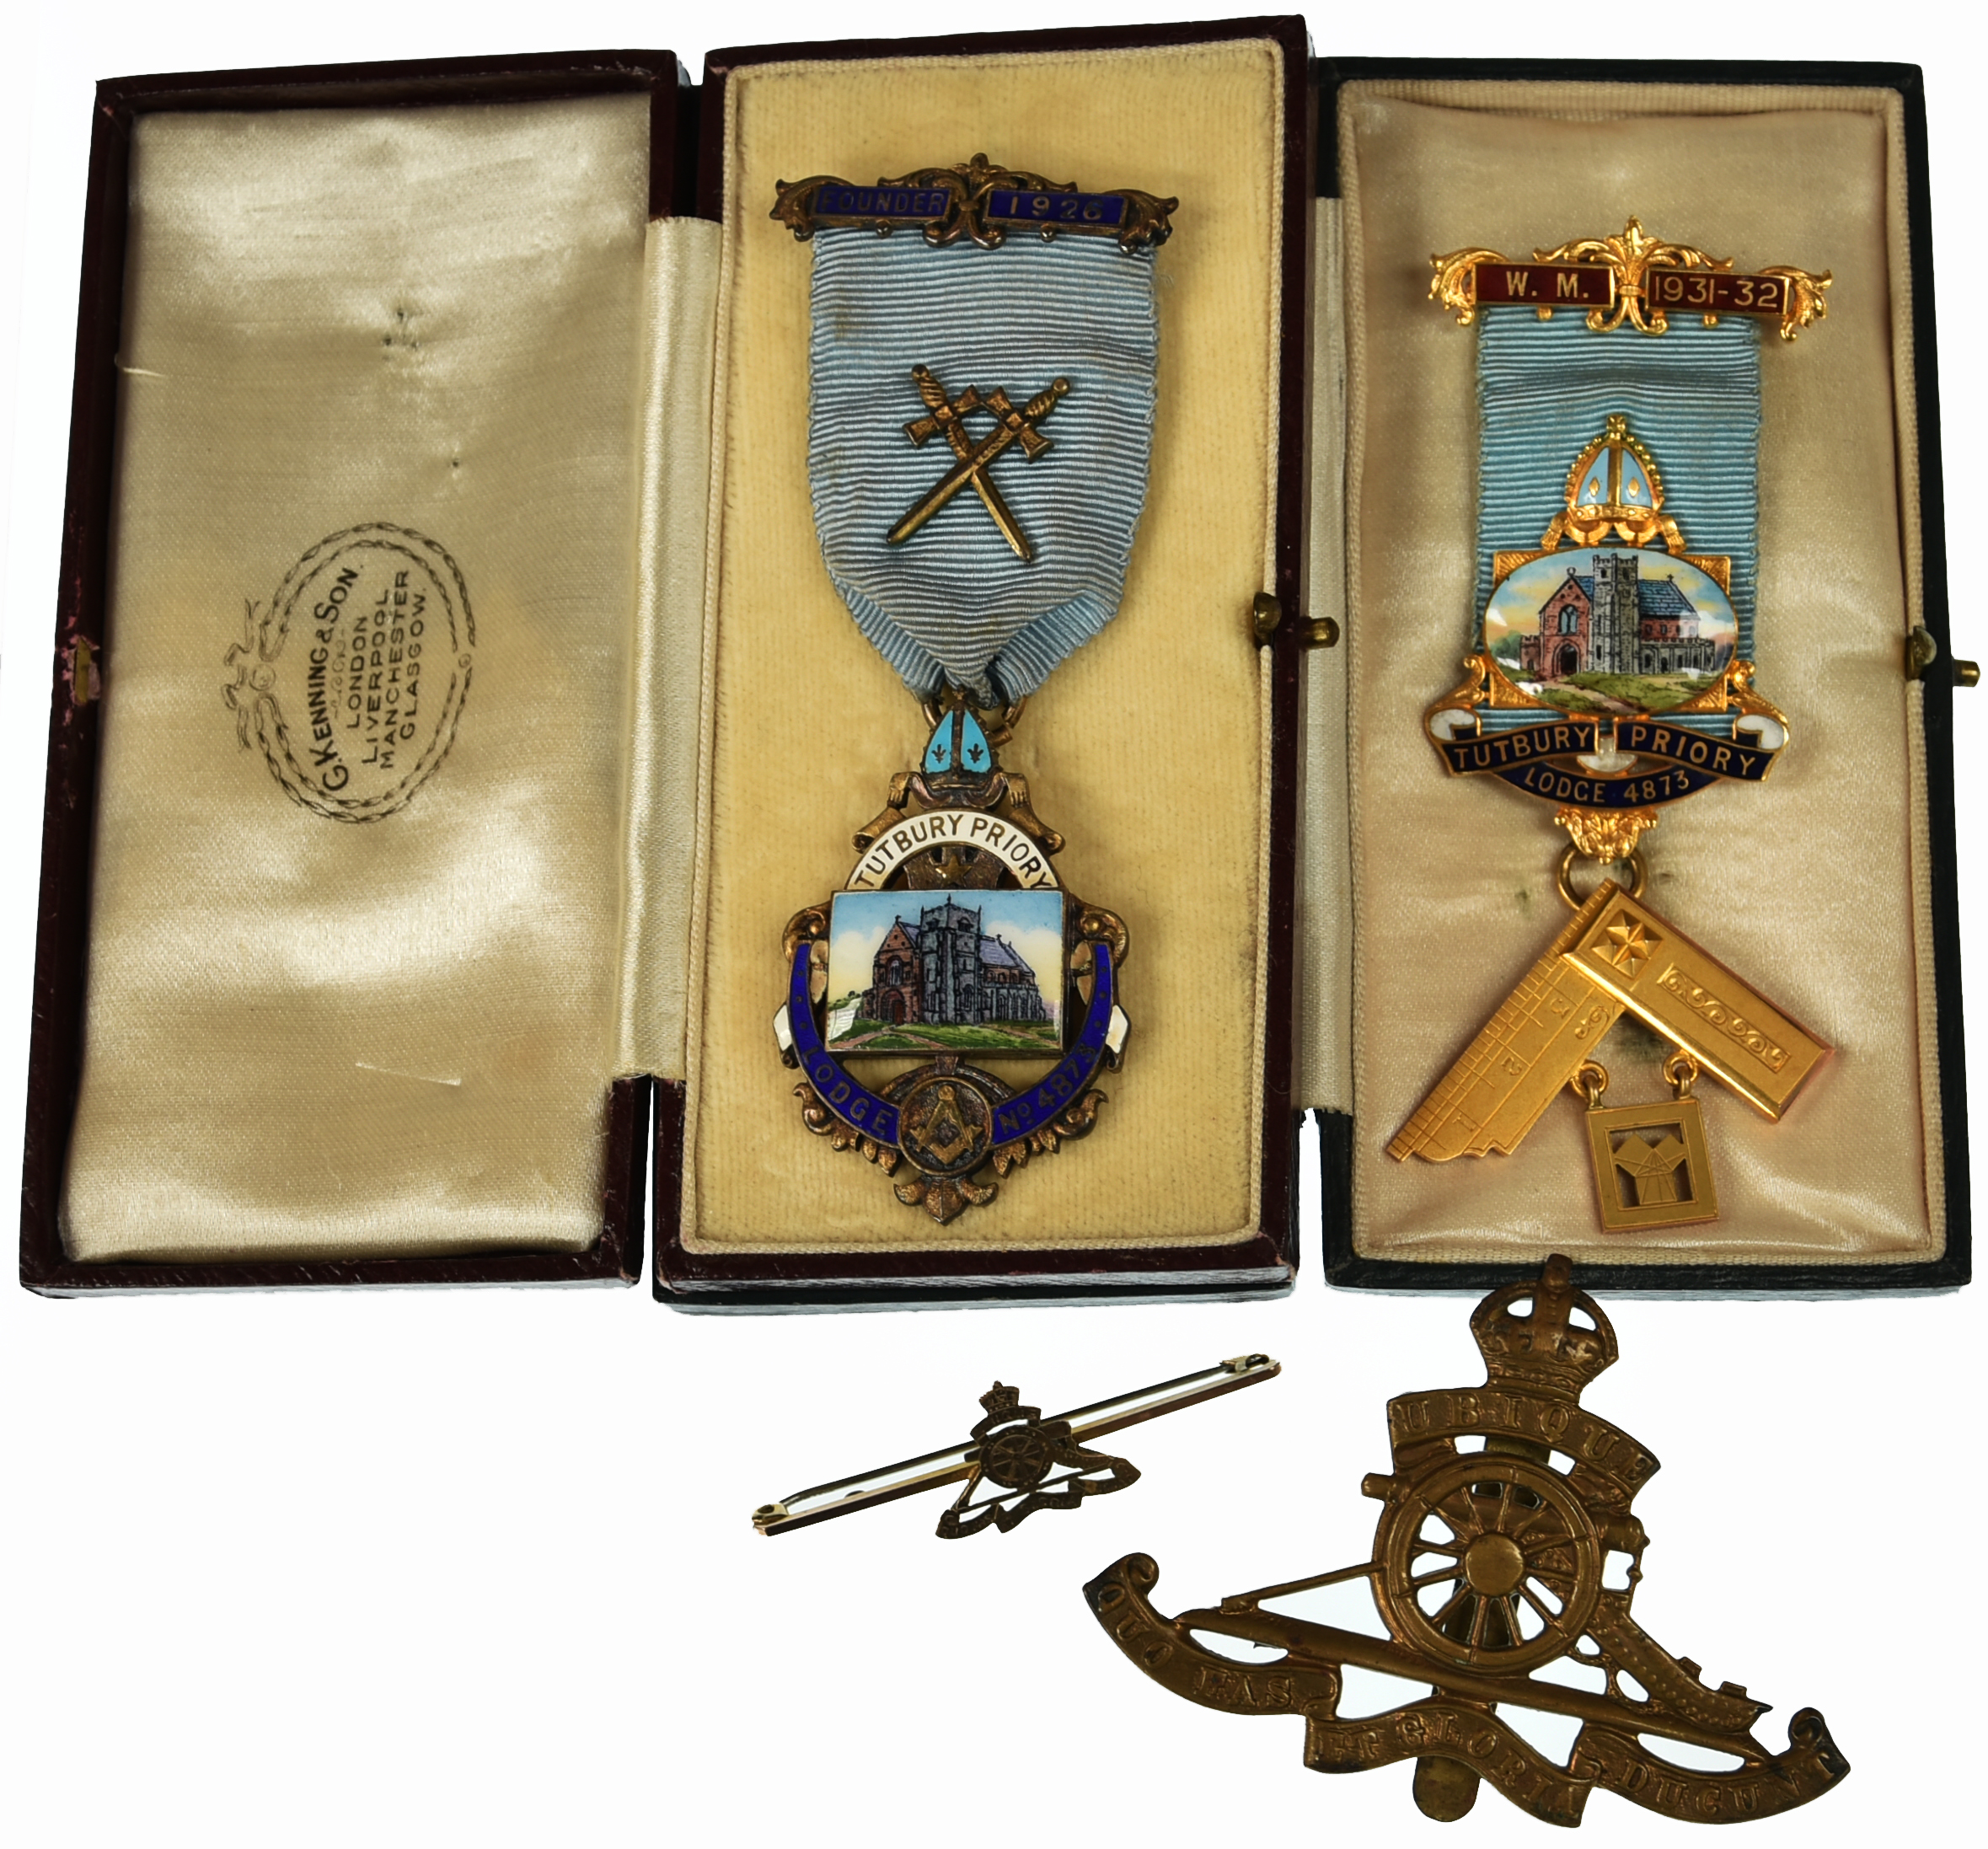 Pair of cased Masonic medals for Tutbury Priory Lodge, gilt with